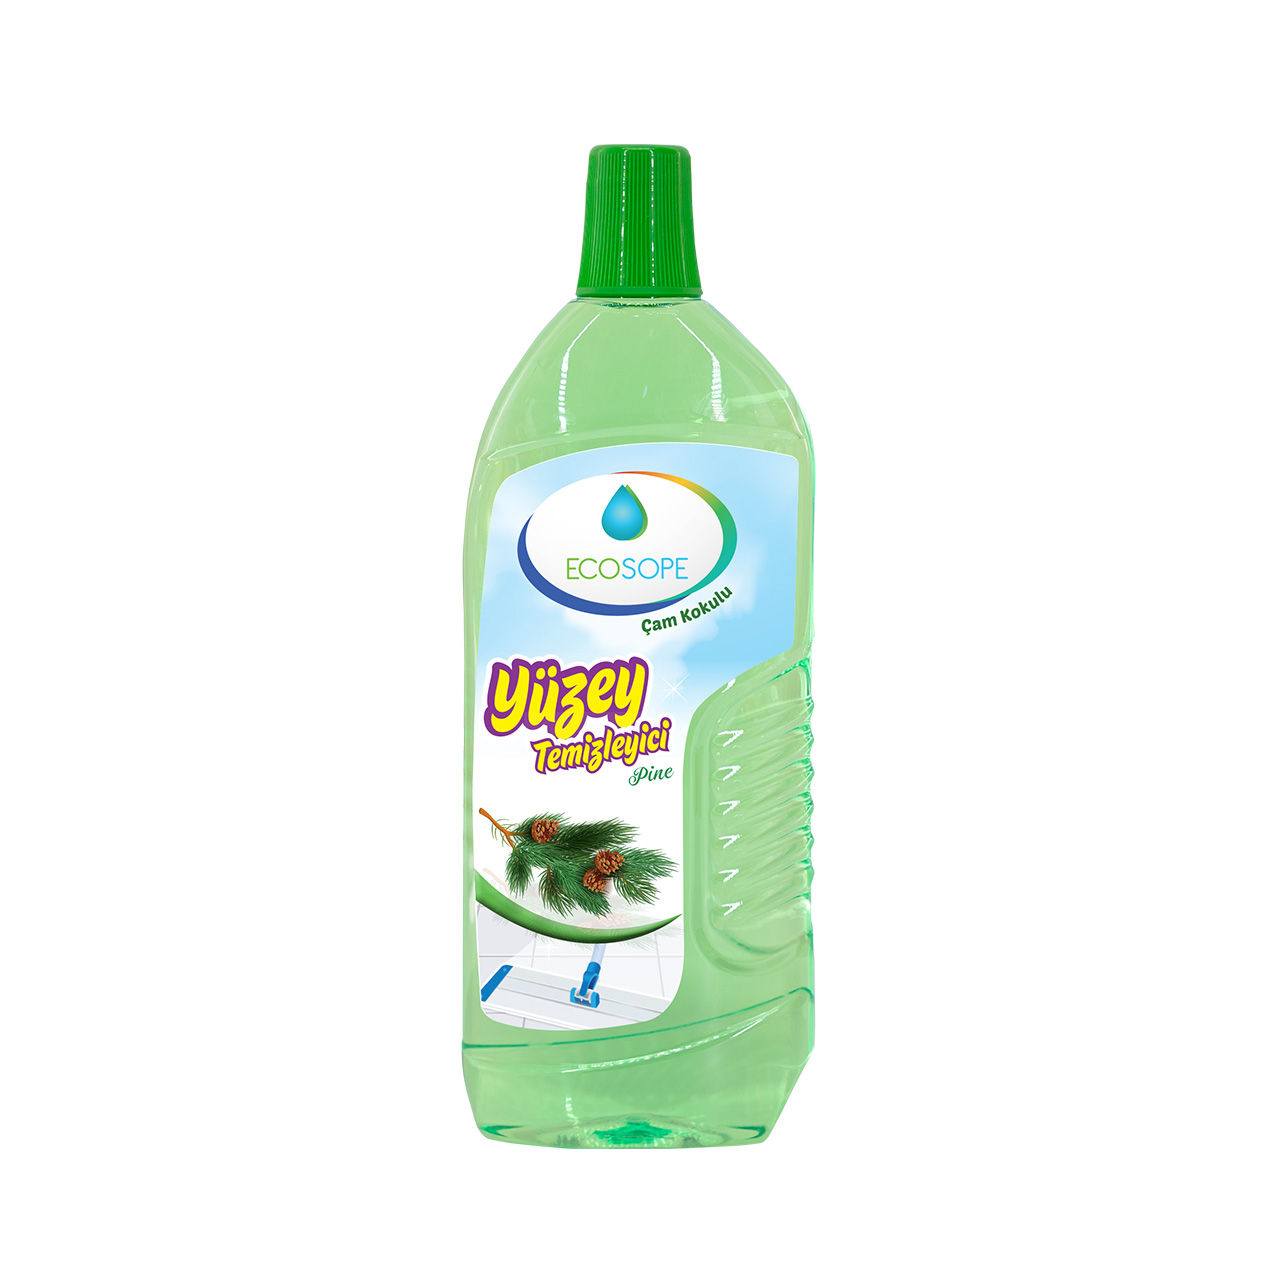 Ecosope Surface Cleaner